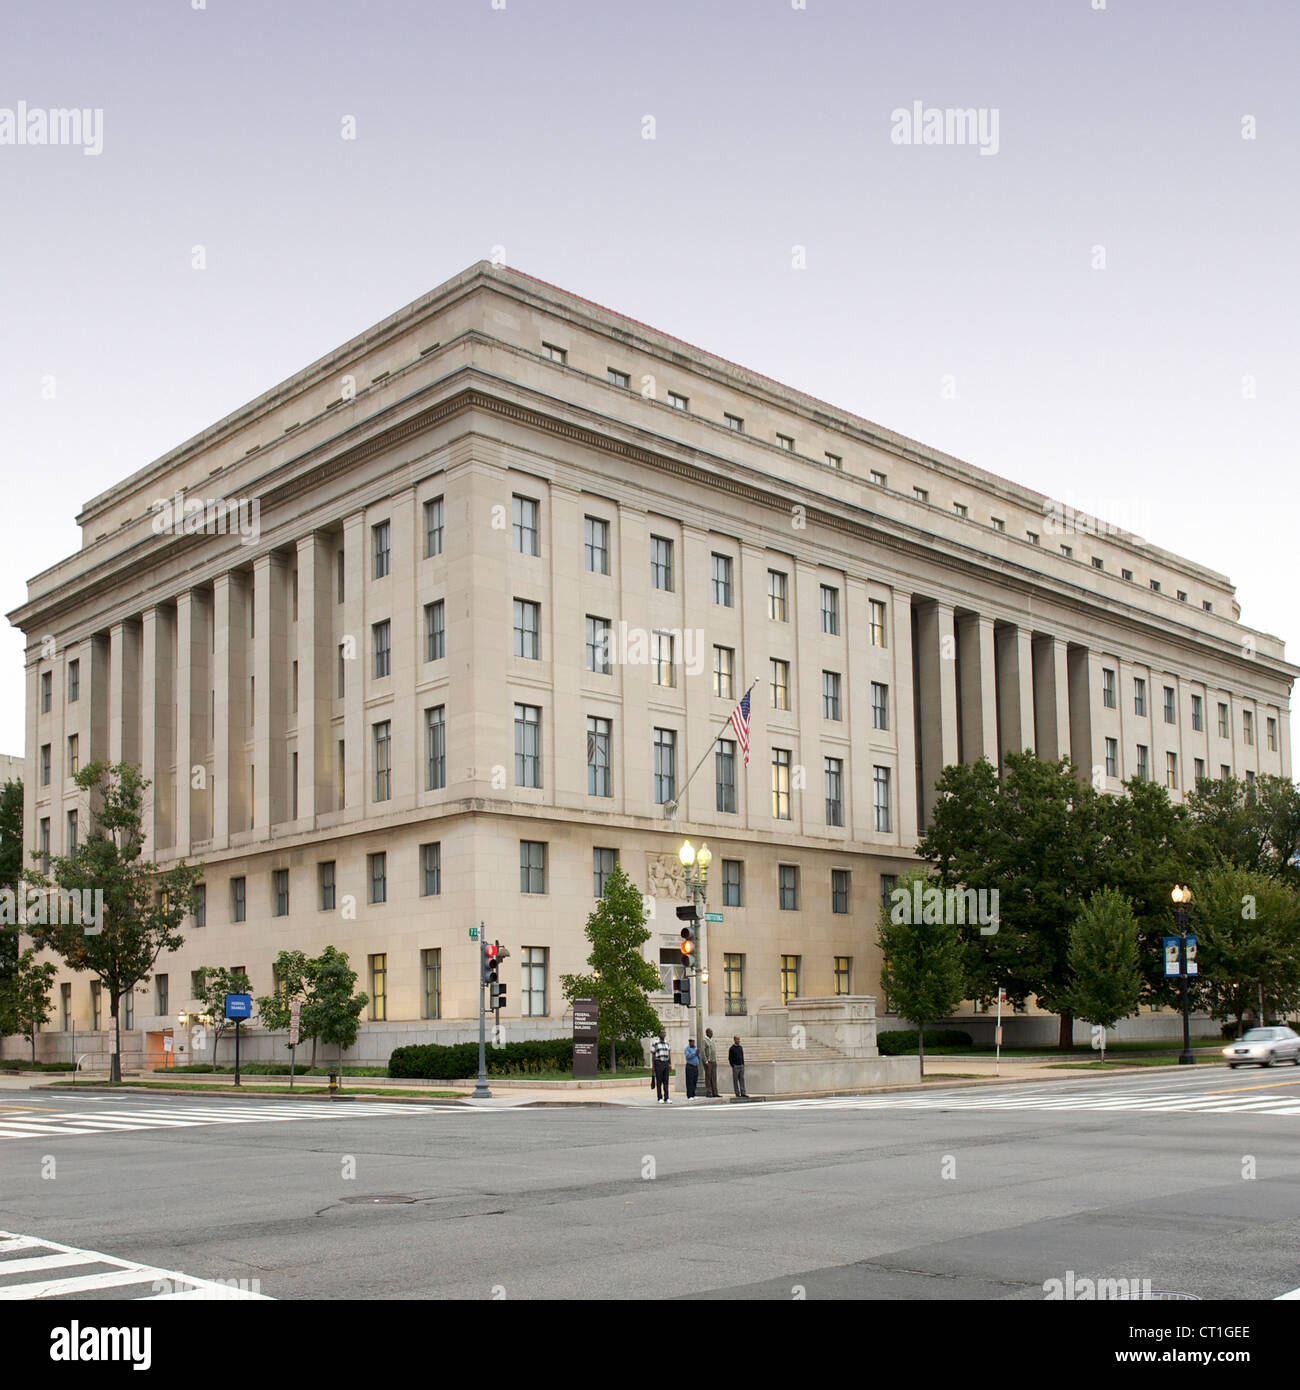 Federal Trade Commission building in Washington DC, USA. - Stock Image